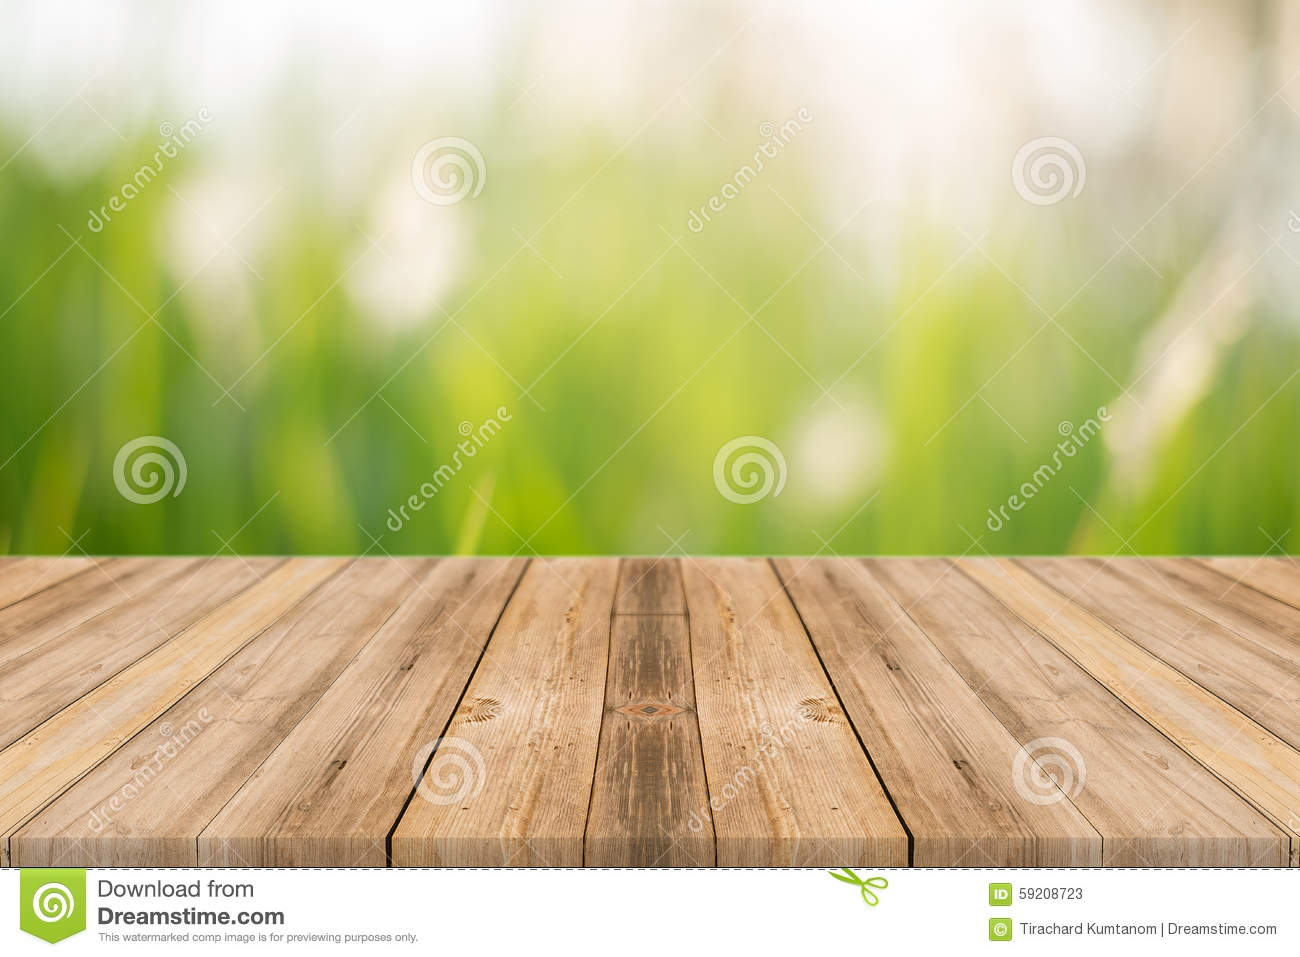 Wooden board empty table blur trees in forest background.